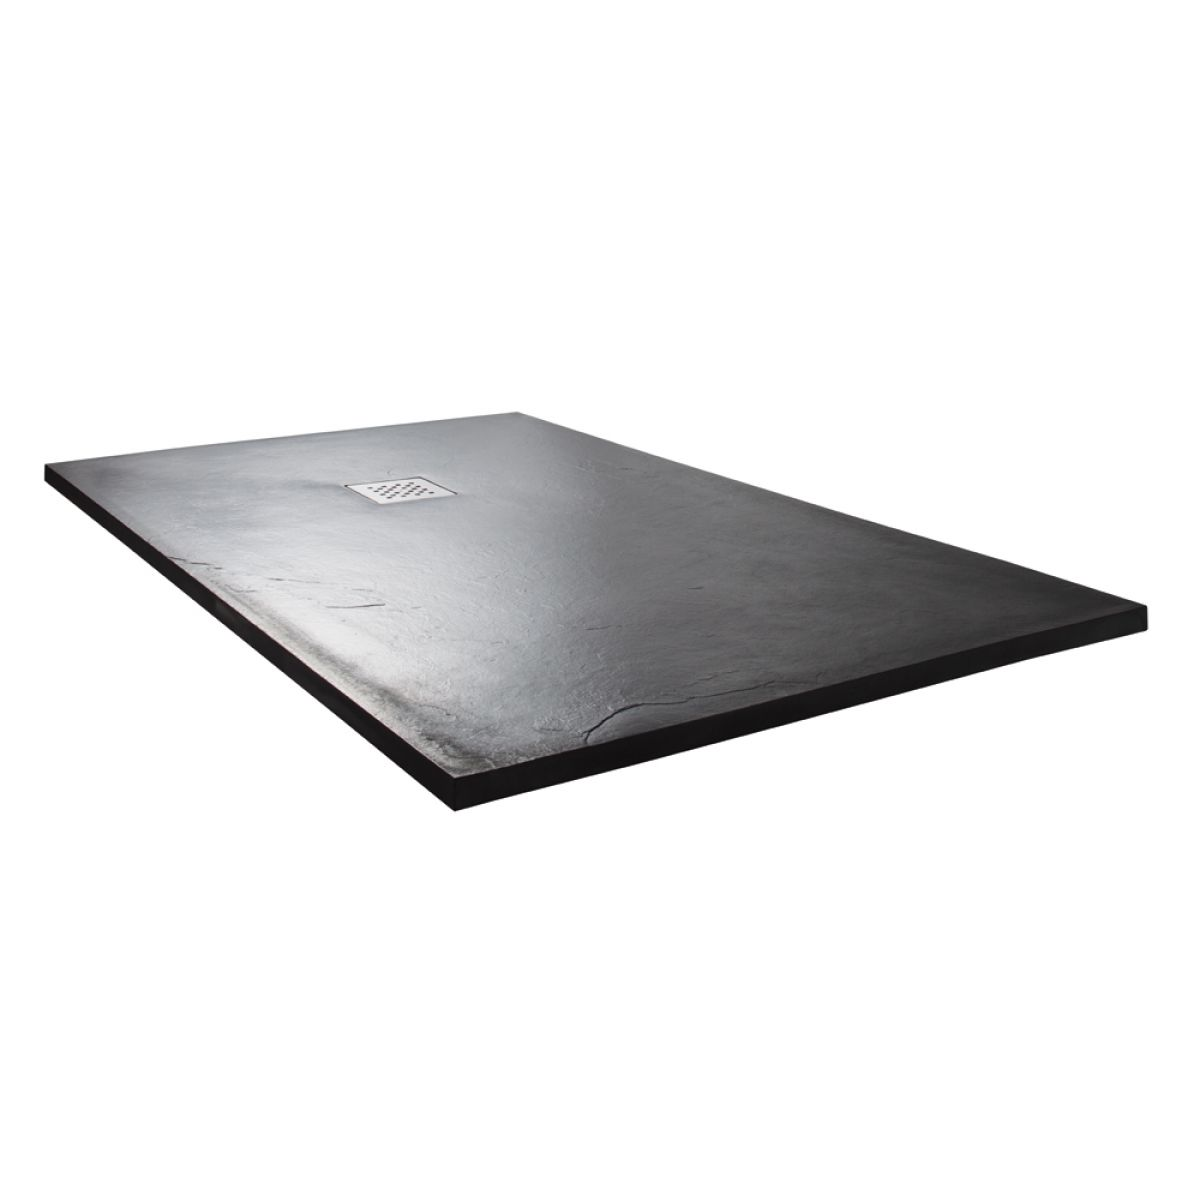 Cassellie Cass Stone Anthracite Slate Effect Rectangular Shower Tray 1400 x 900mm